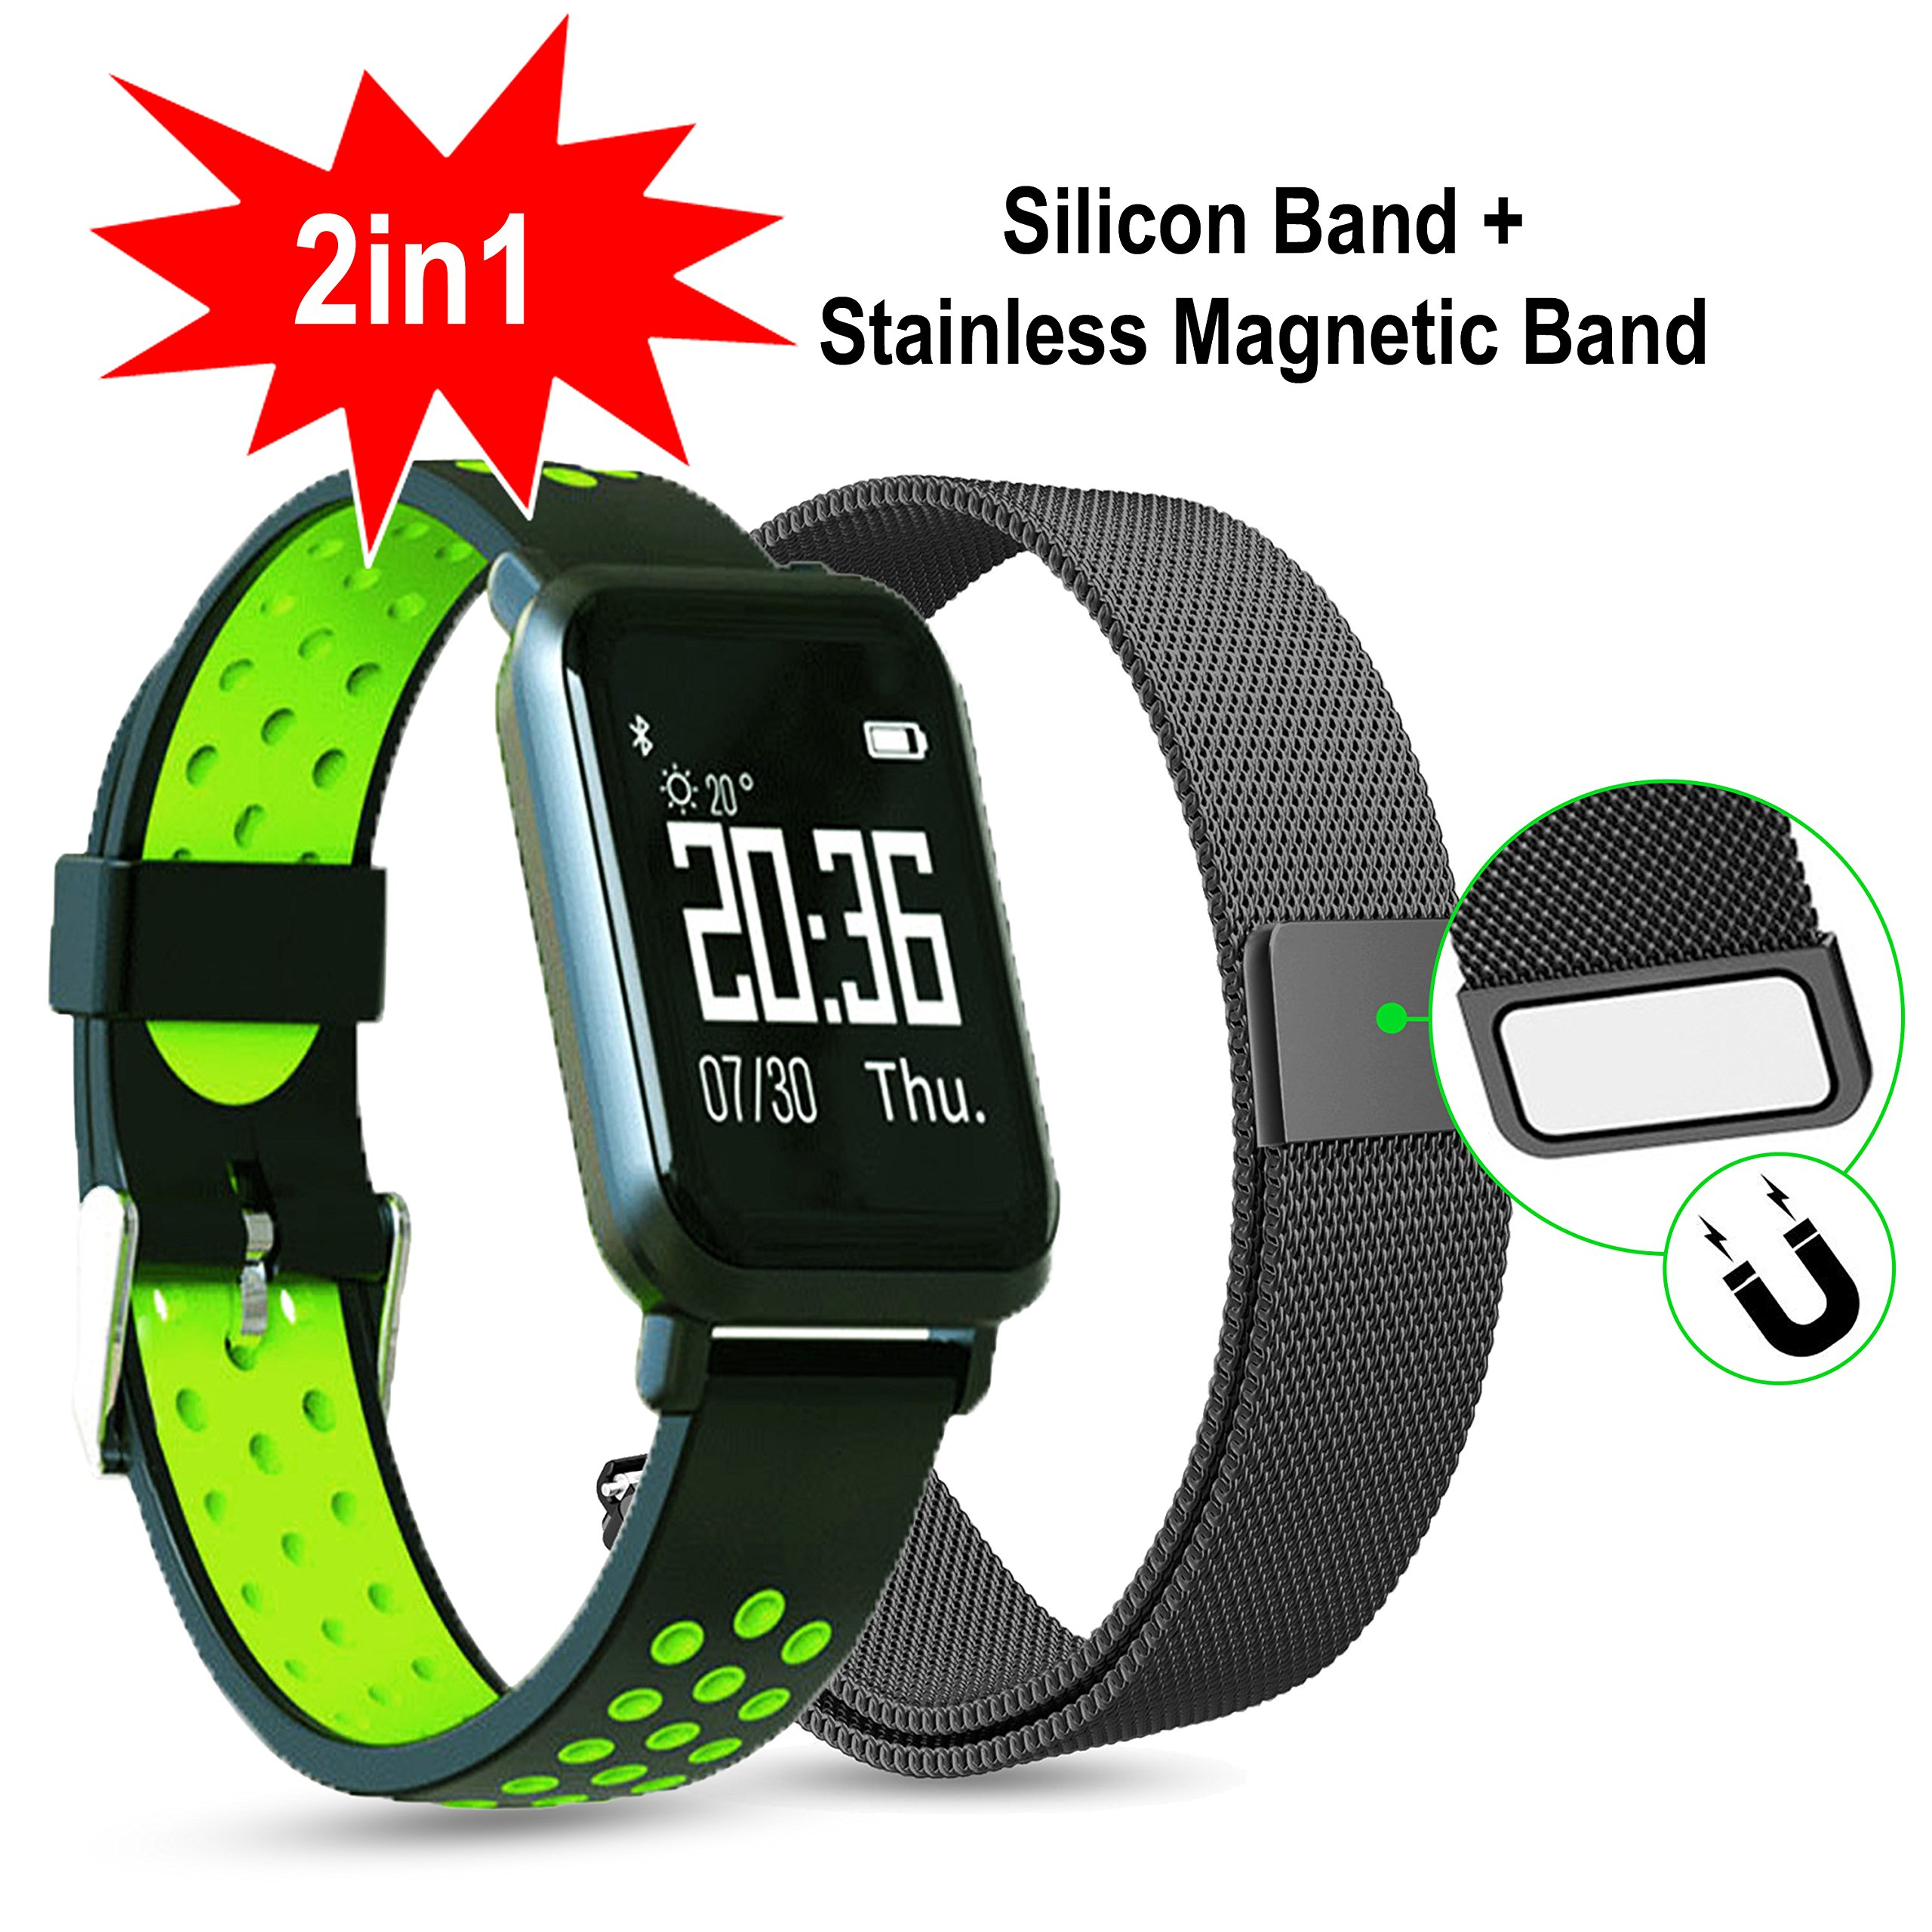 Smartwatch for iphone,gorilla glass touchscreen smartwatch IP68 fitness tracker with heart rate monitor